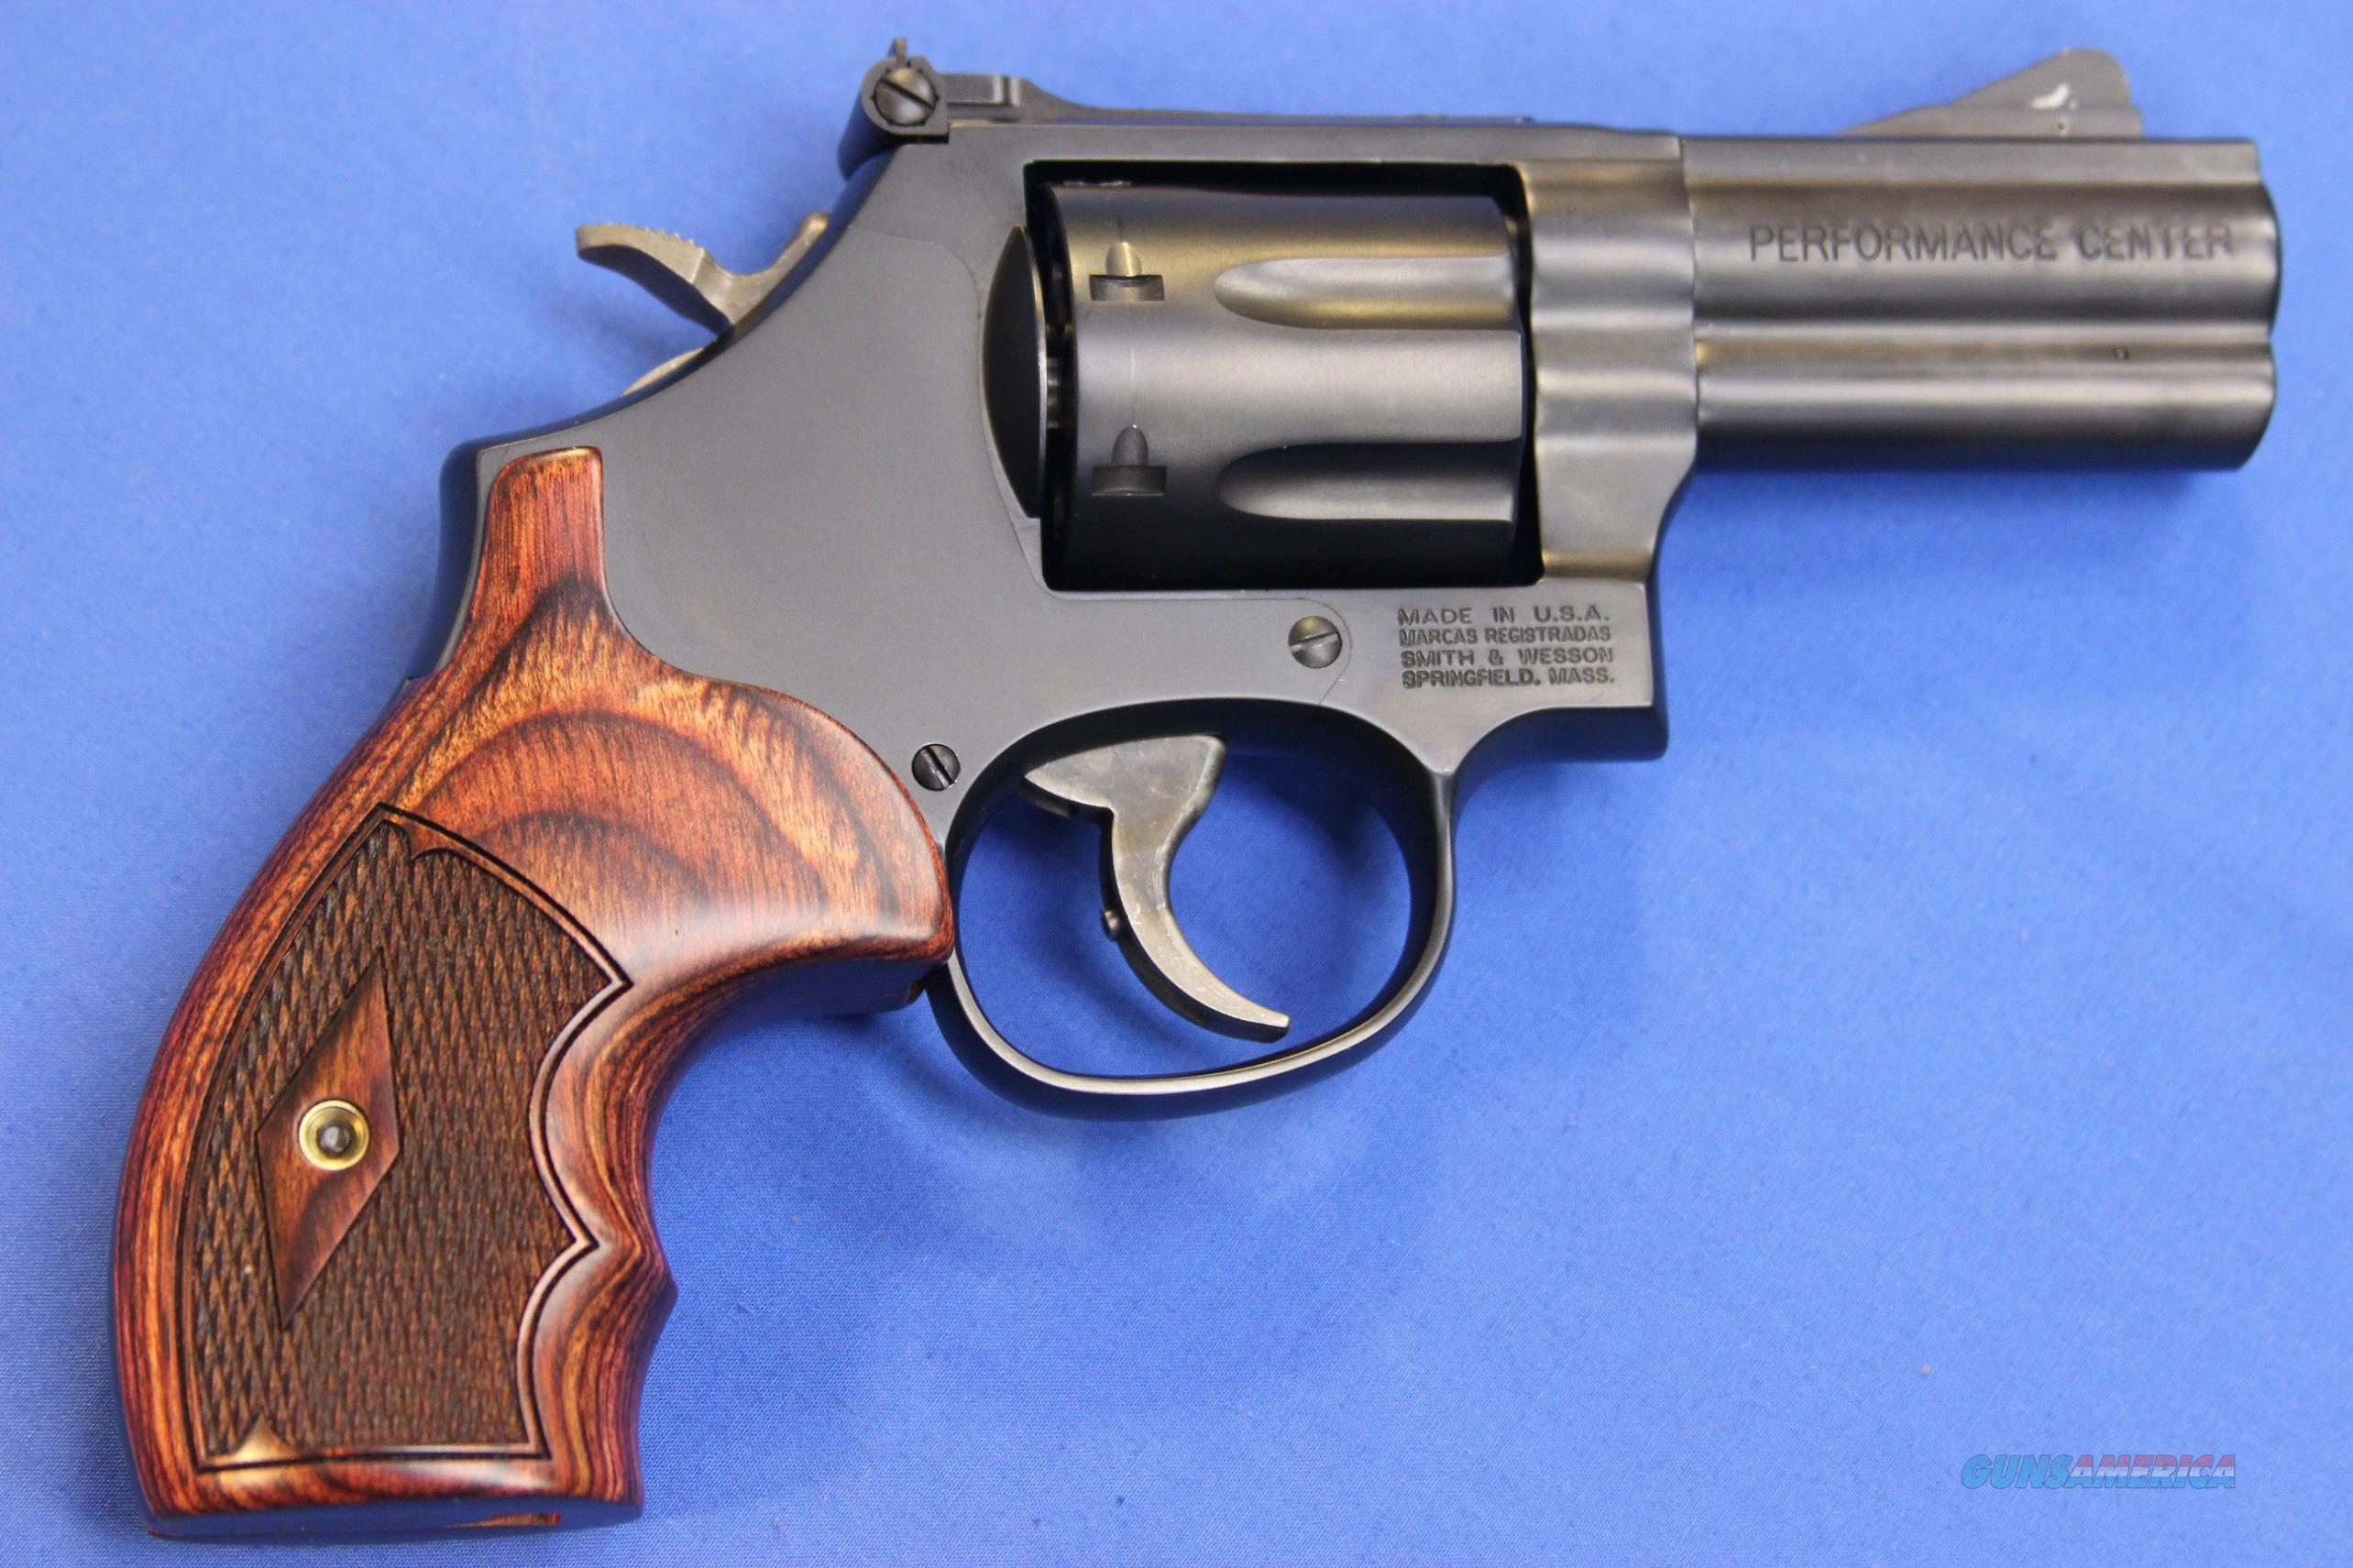 SMITH & WESSON 586 L-COMP PERF CENTER 7x .357 MAG - NEW!  Guns > Pistols > Smith & Wesson Revolvers > Performance Center